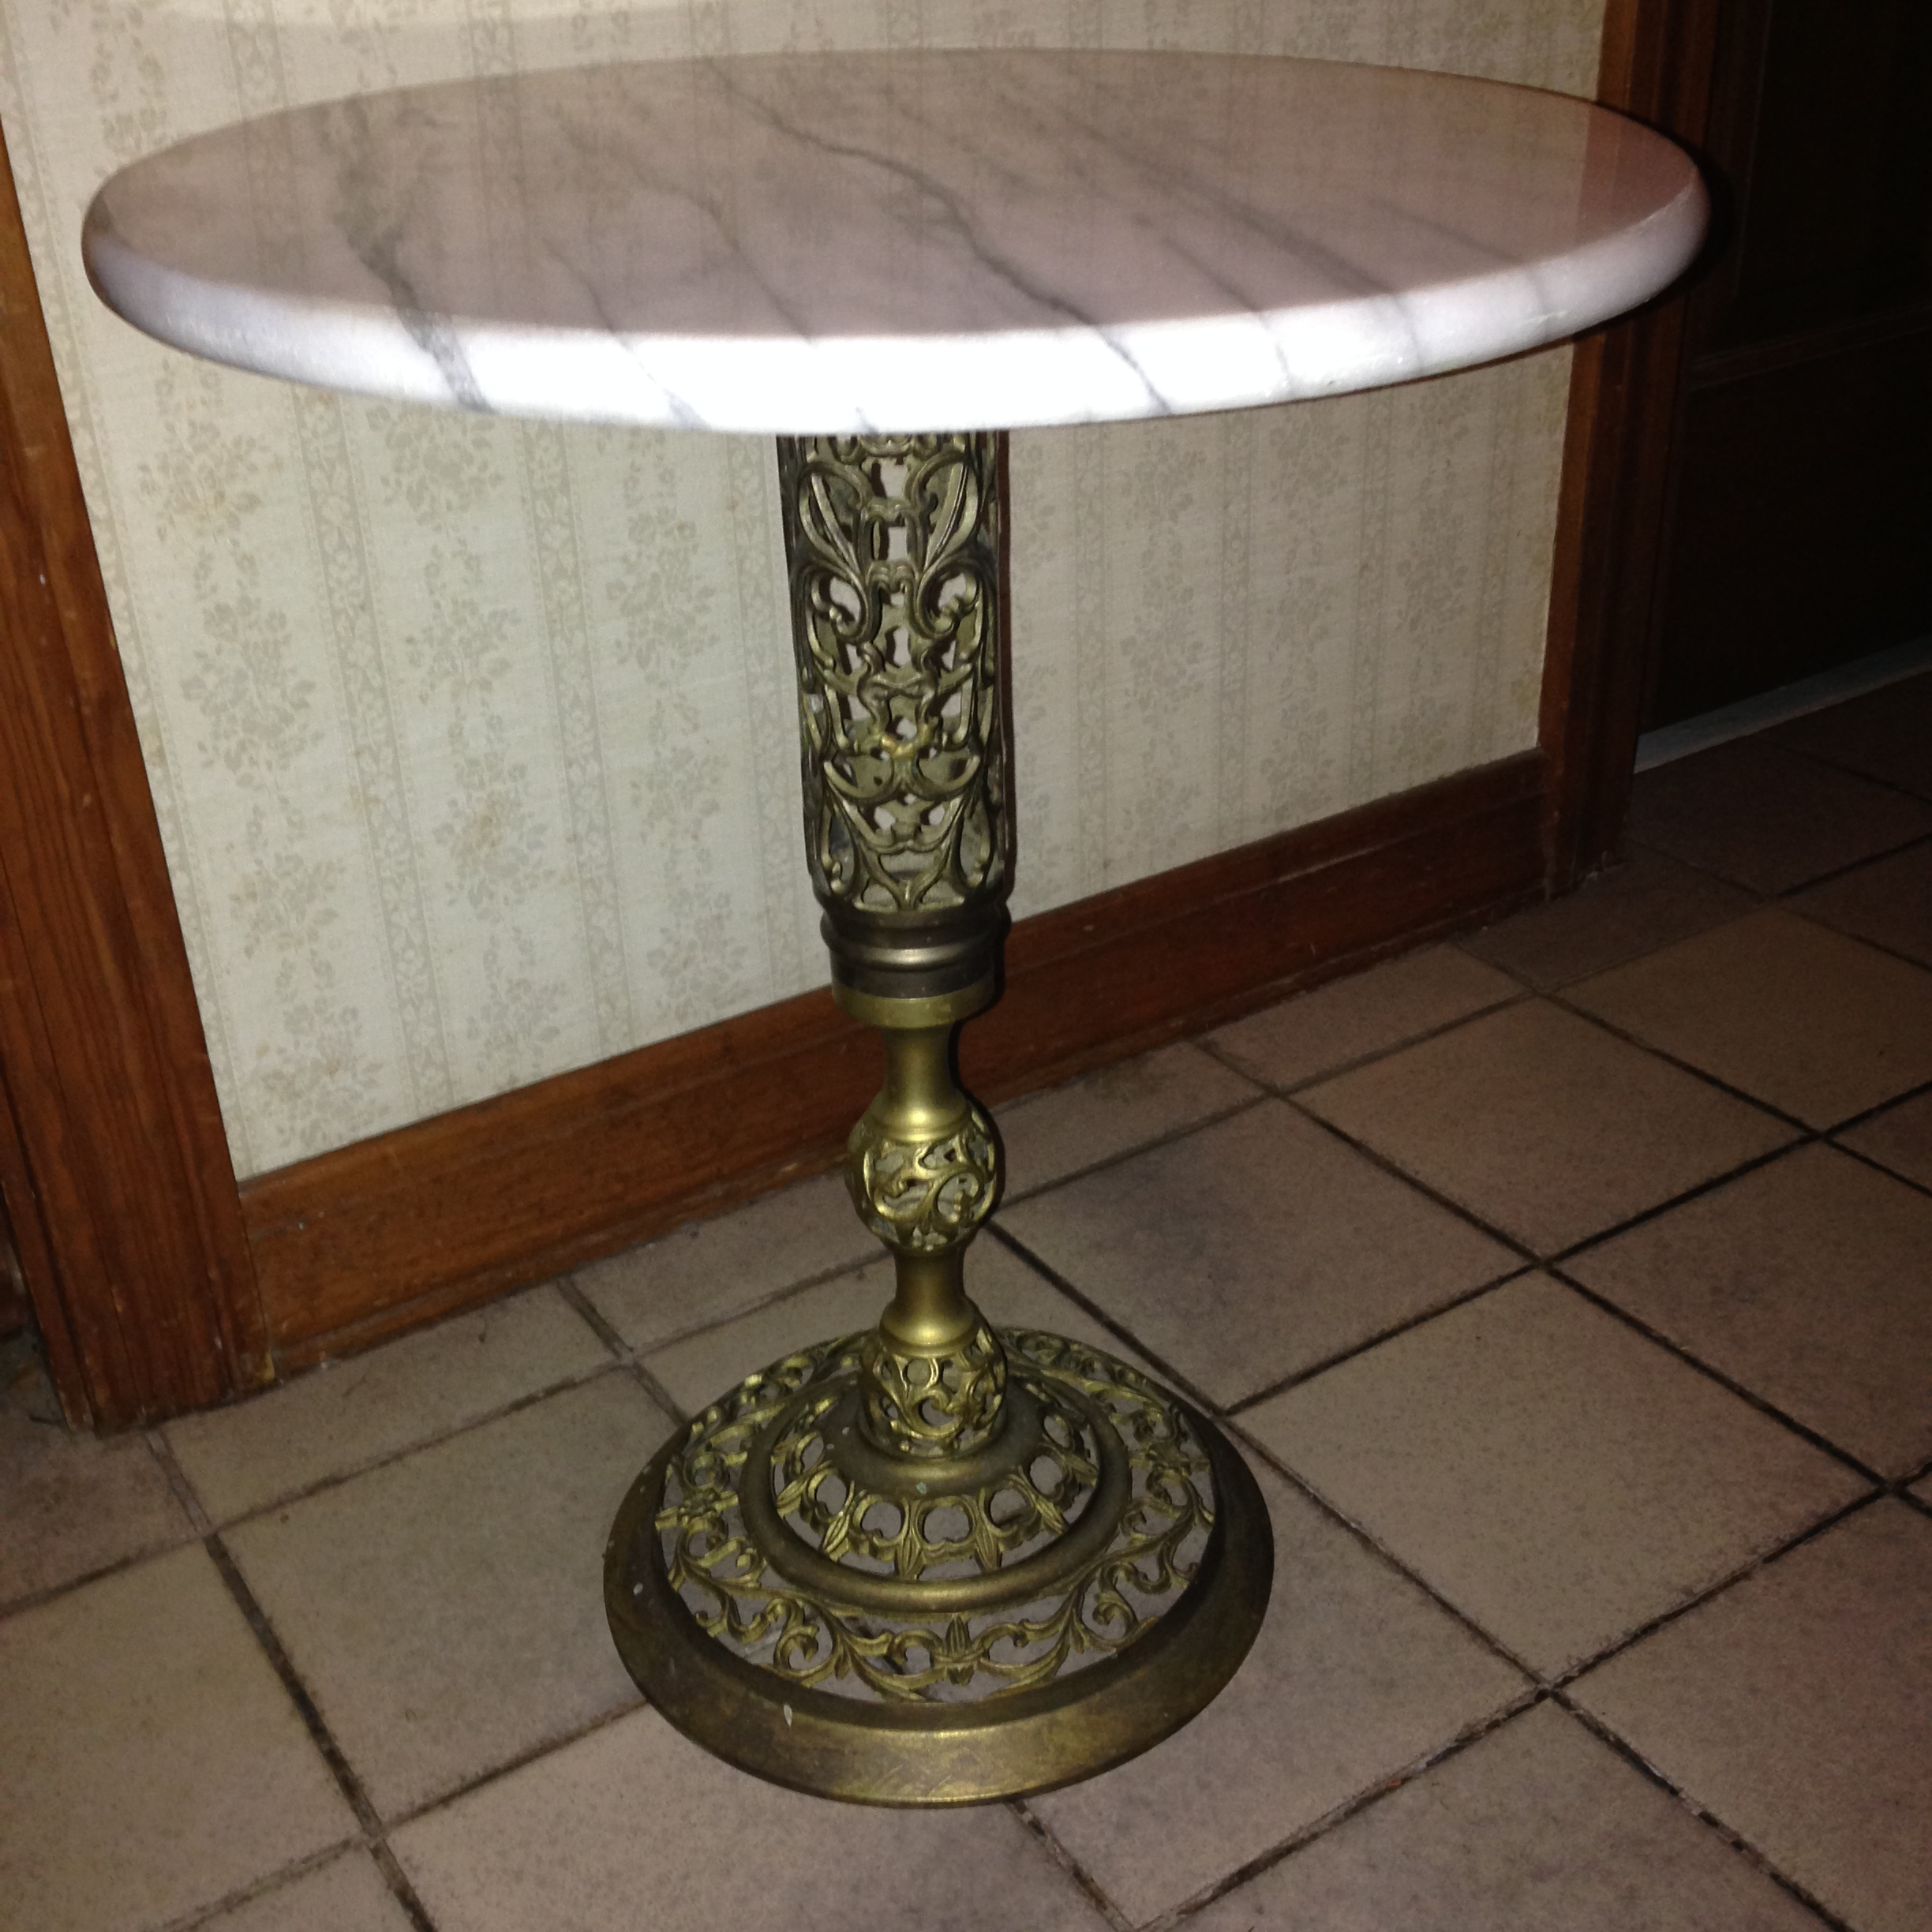 end tables furniture small round table square brushed pedestal marble top sold vintage with ornate brass uncategorized antique drawer circular accent coffee base gold bedside home